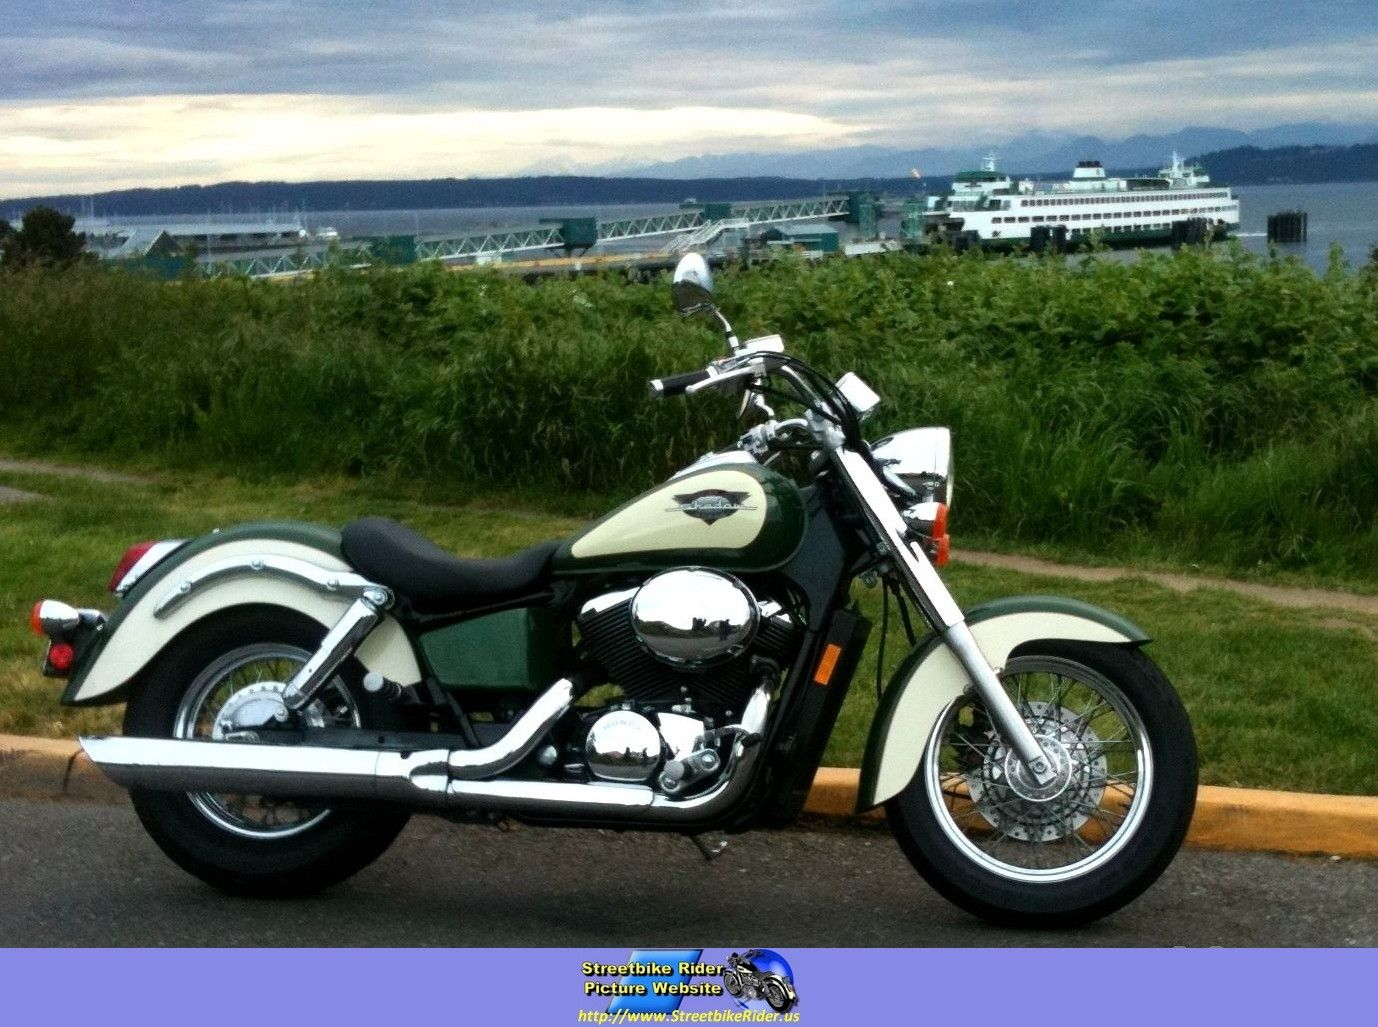 1999 Honda Shadow 750 Ace green. Another view of my favorite bike.